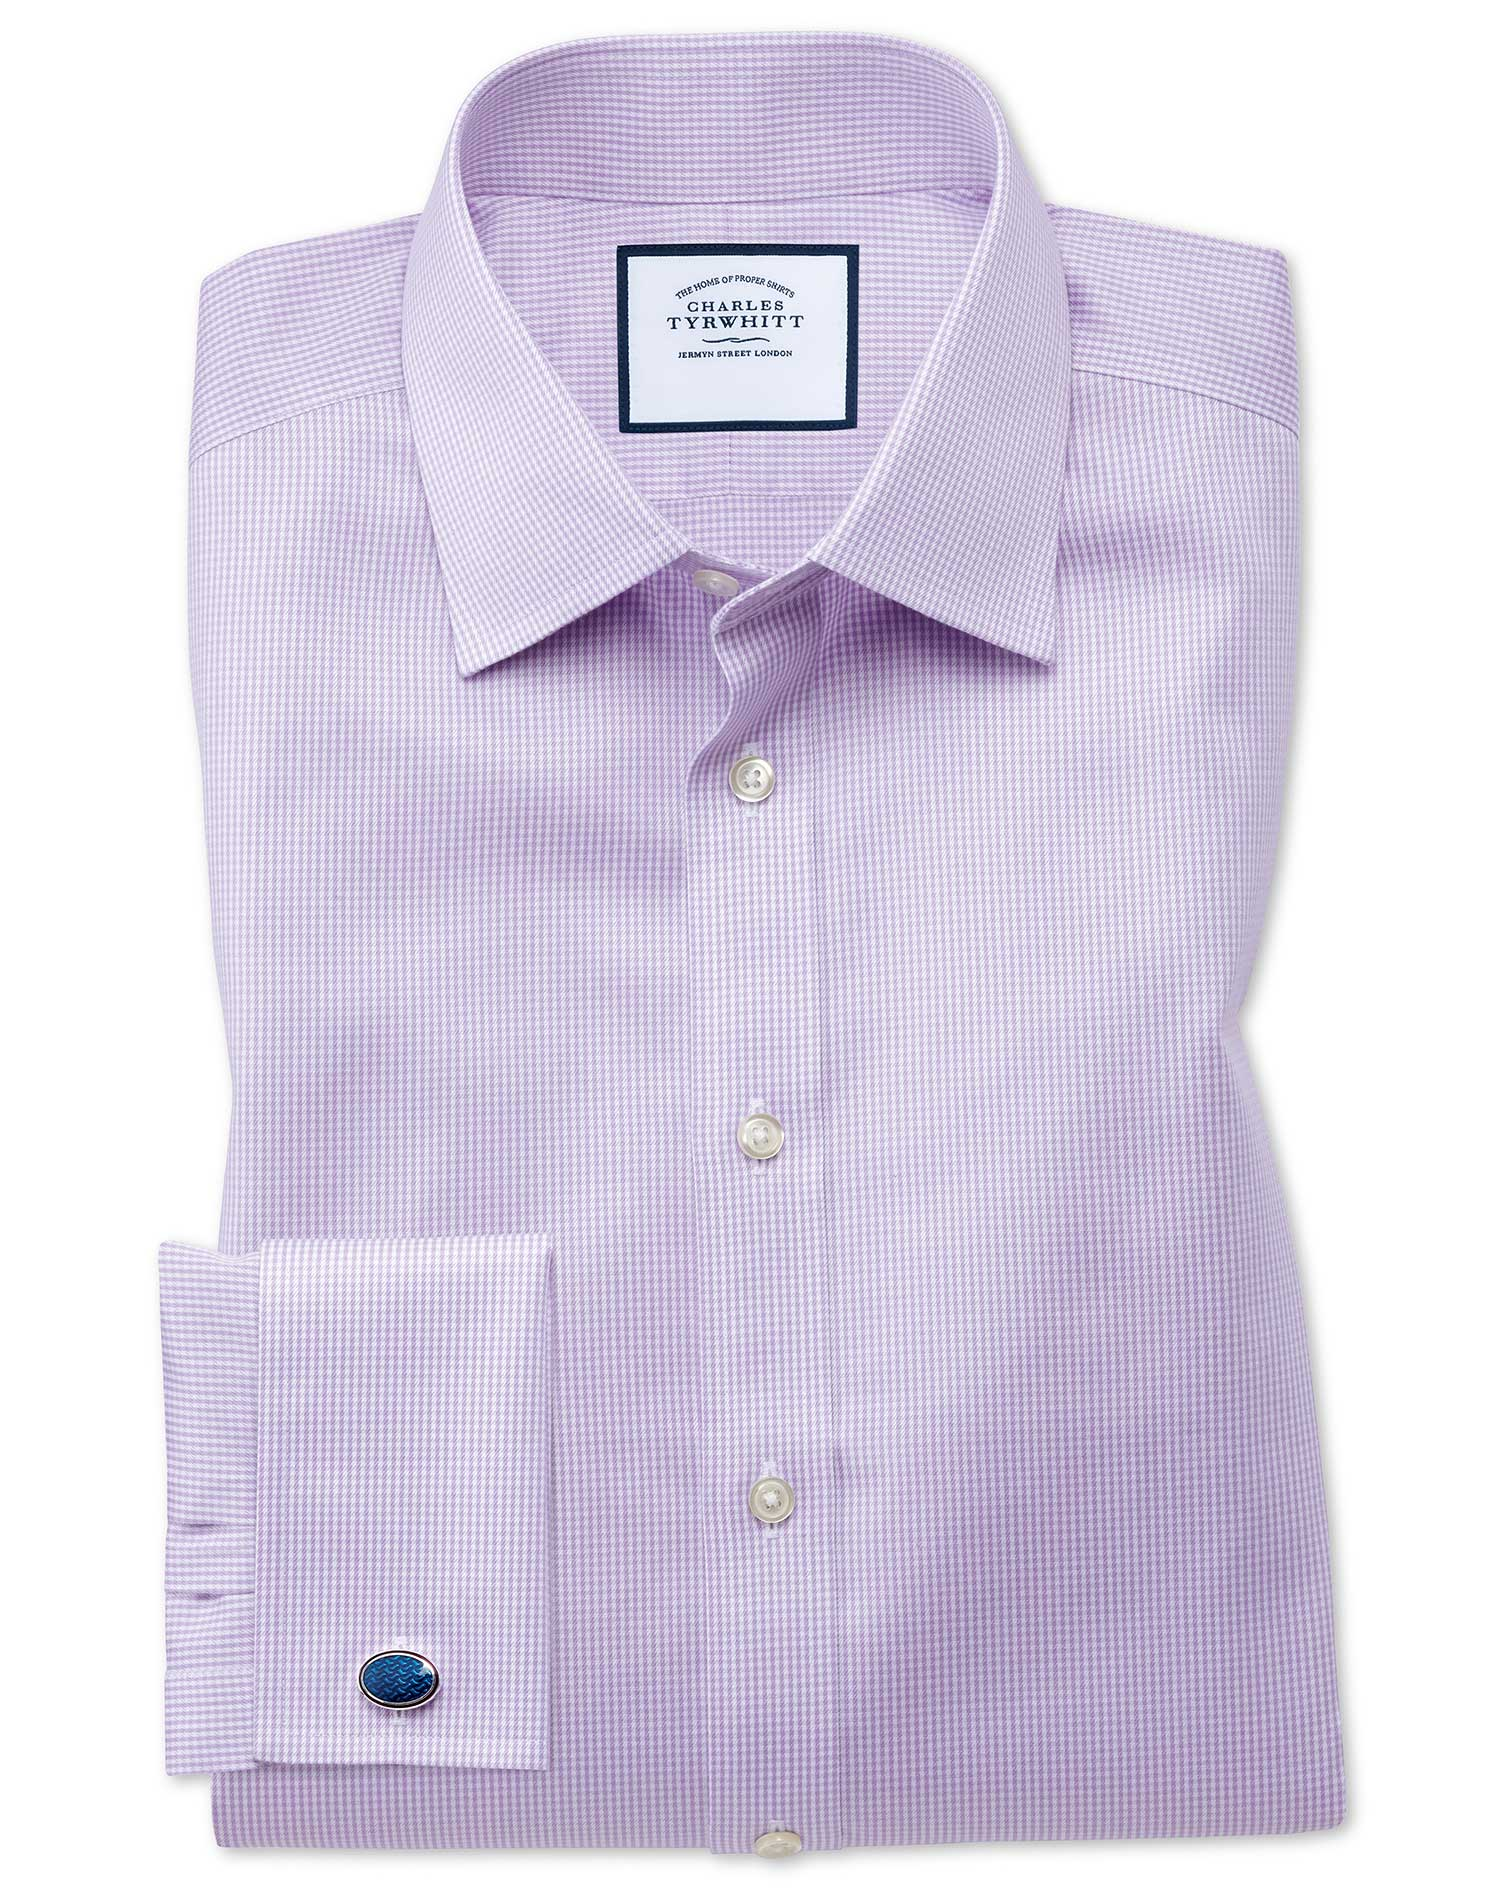 Classic Fit Non-Iron Puppytooth Lilac Cotton Formal Shirt Single Cuff Size 18/36 by Charles Tyrwhitt